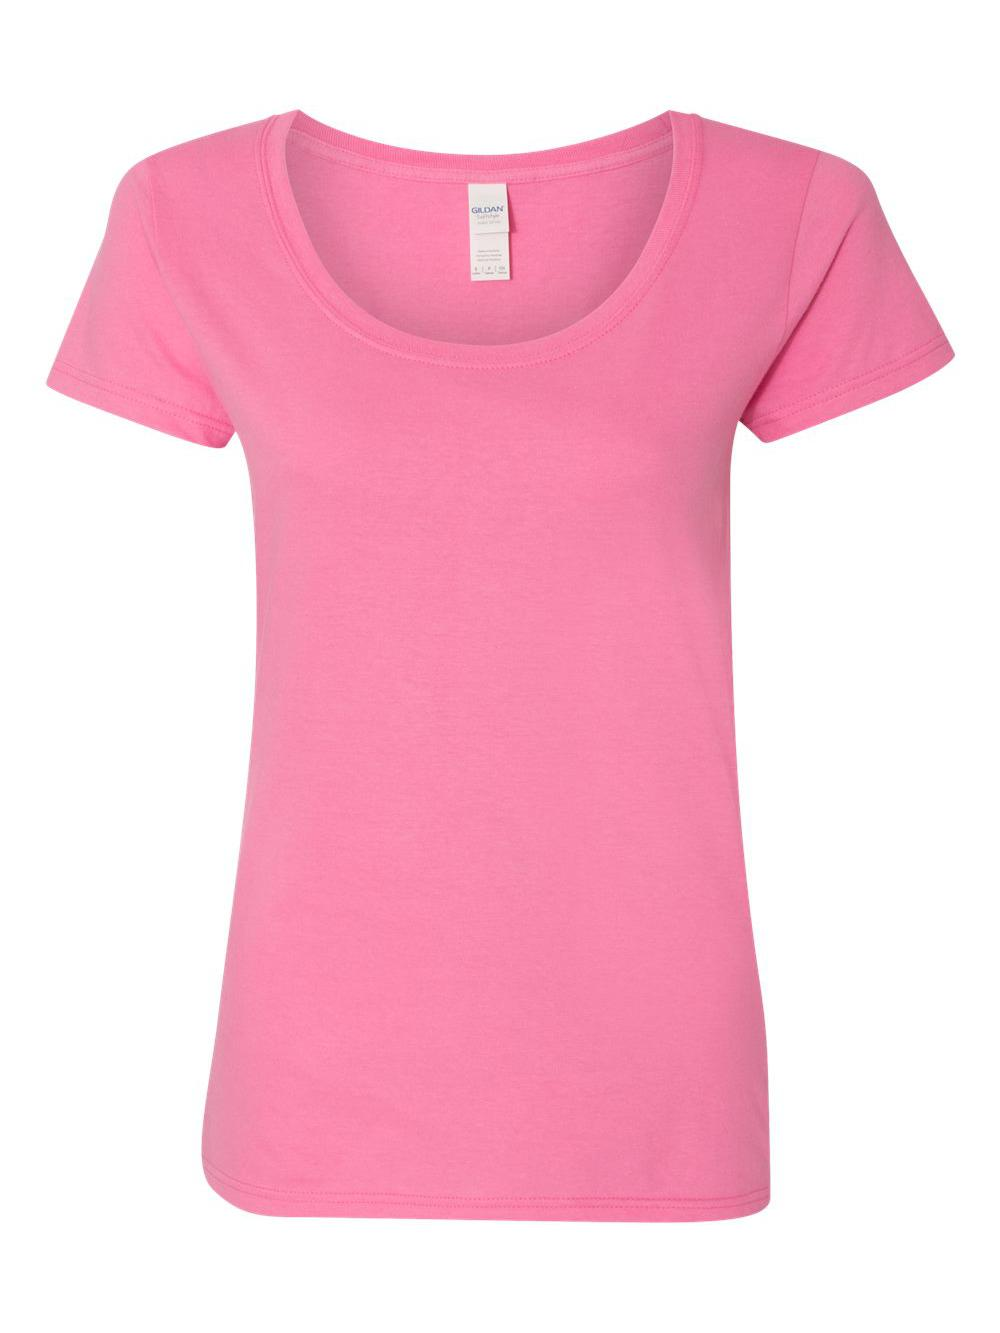 Gildan-Softstyle-Women-039-s-Deep-Scoopneck-T-Shirt-64550L thumbnail 3